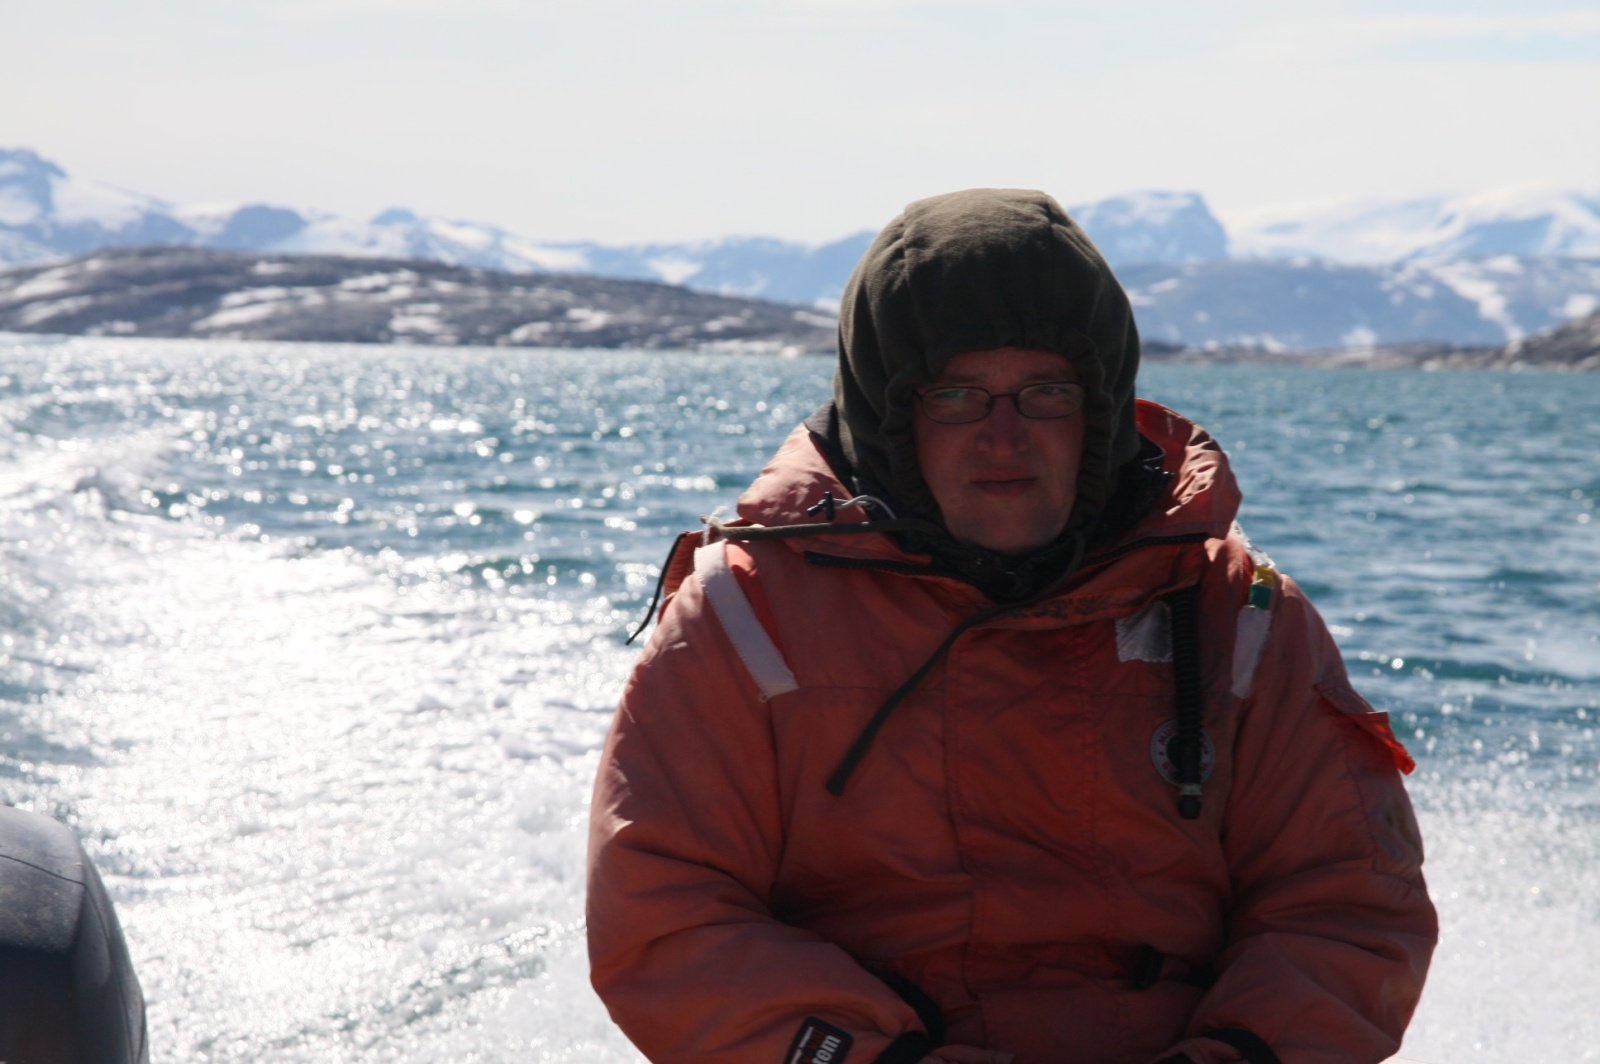 Very cold, even in the 'Arctic Survival' costume